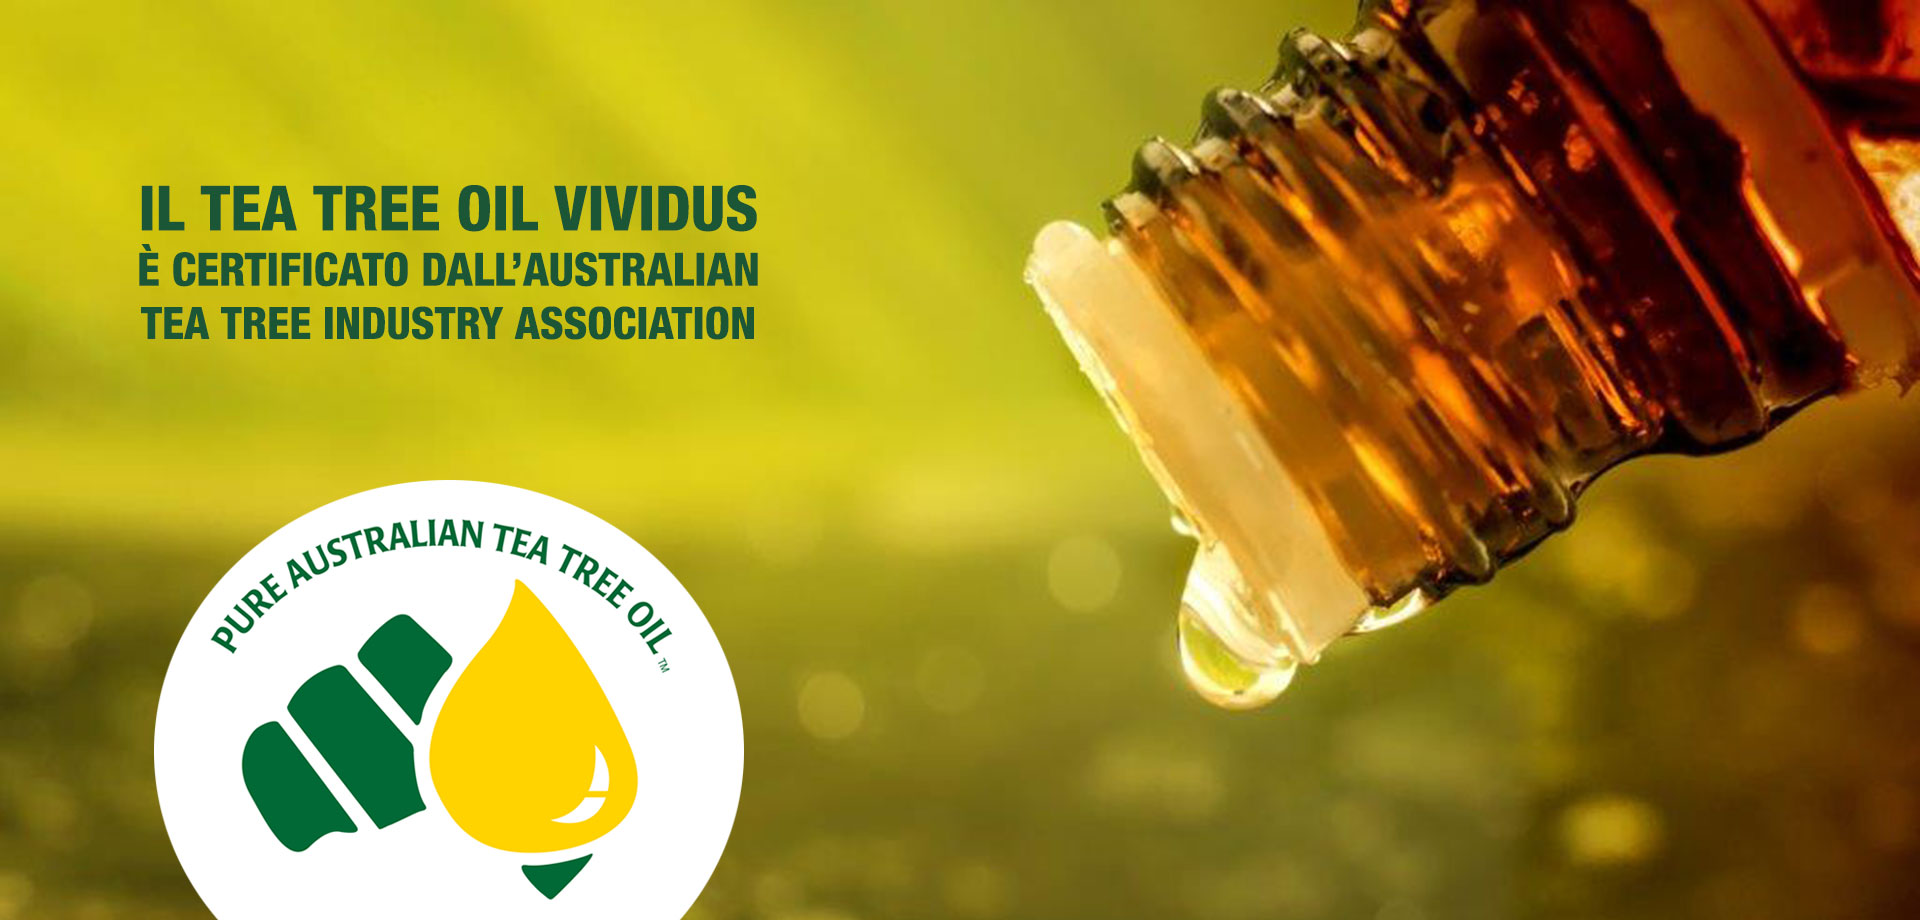 Tea Tree Oil Vividus